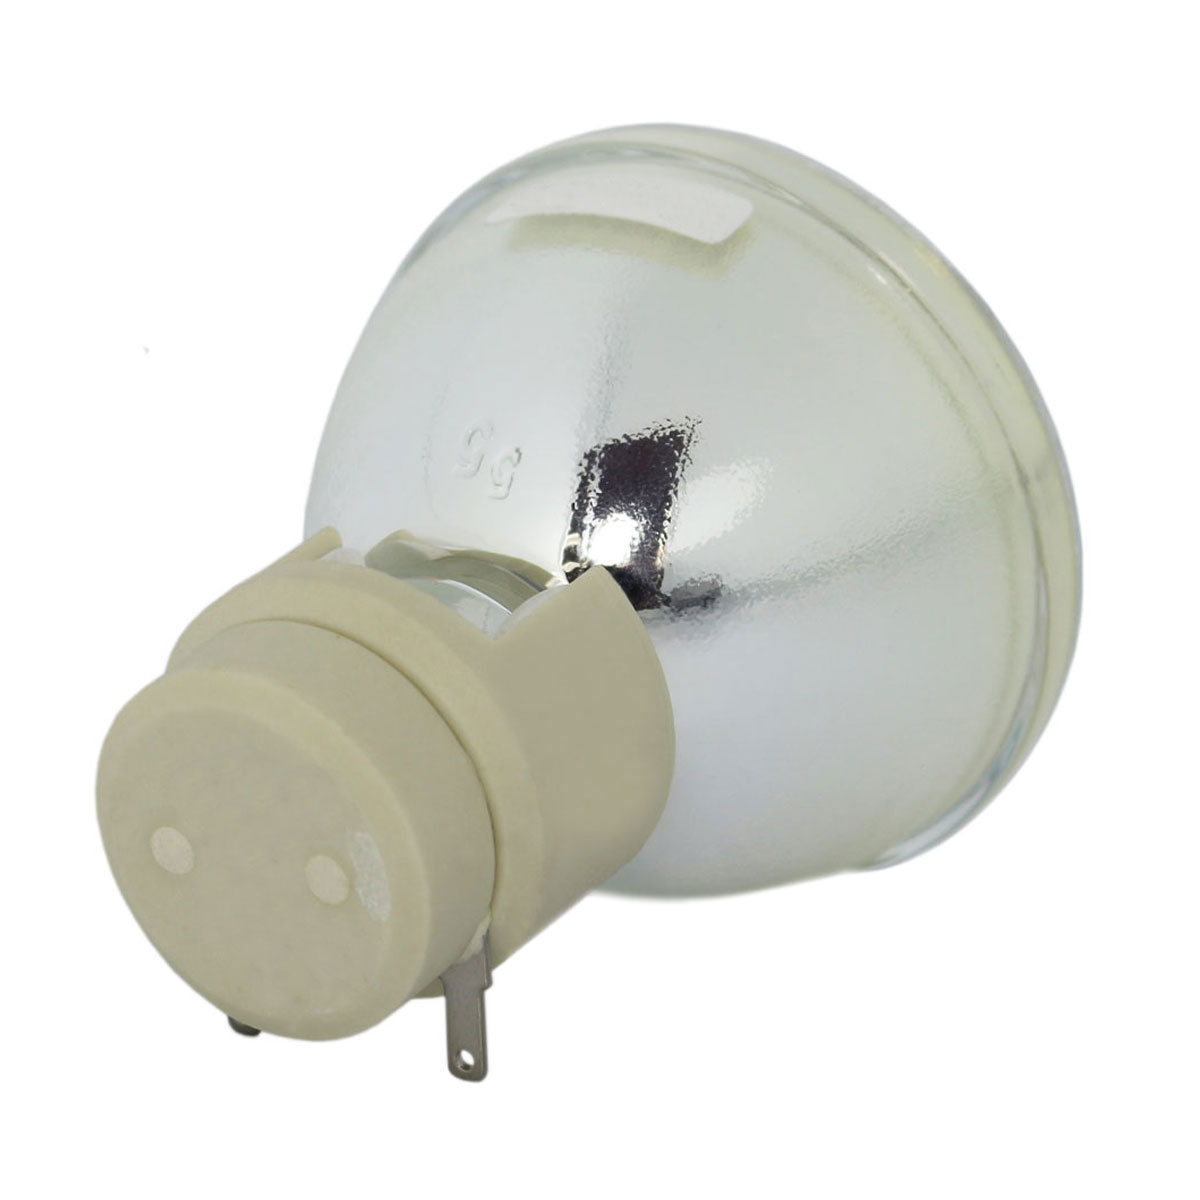 Lutema Economy for Viewsonic PJD6251 Projector Lamp with Housing - image 3 of 5